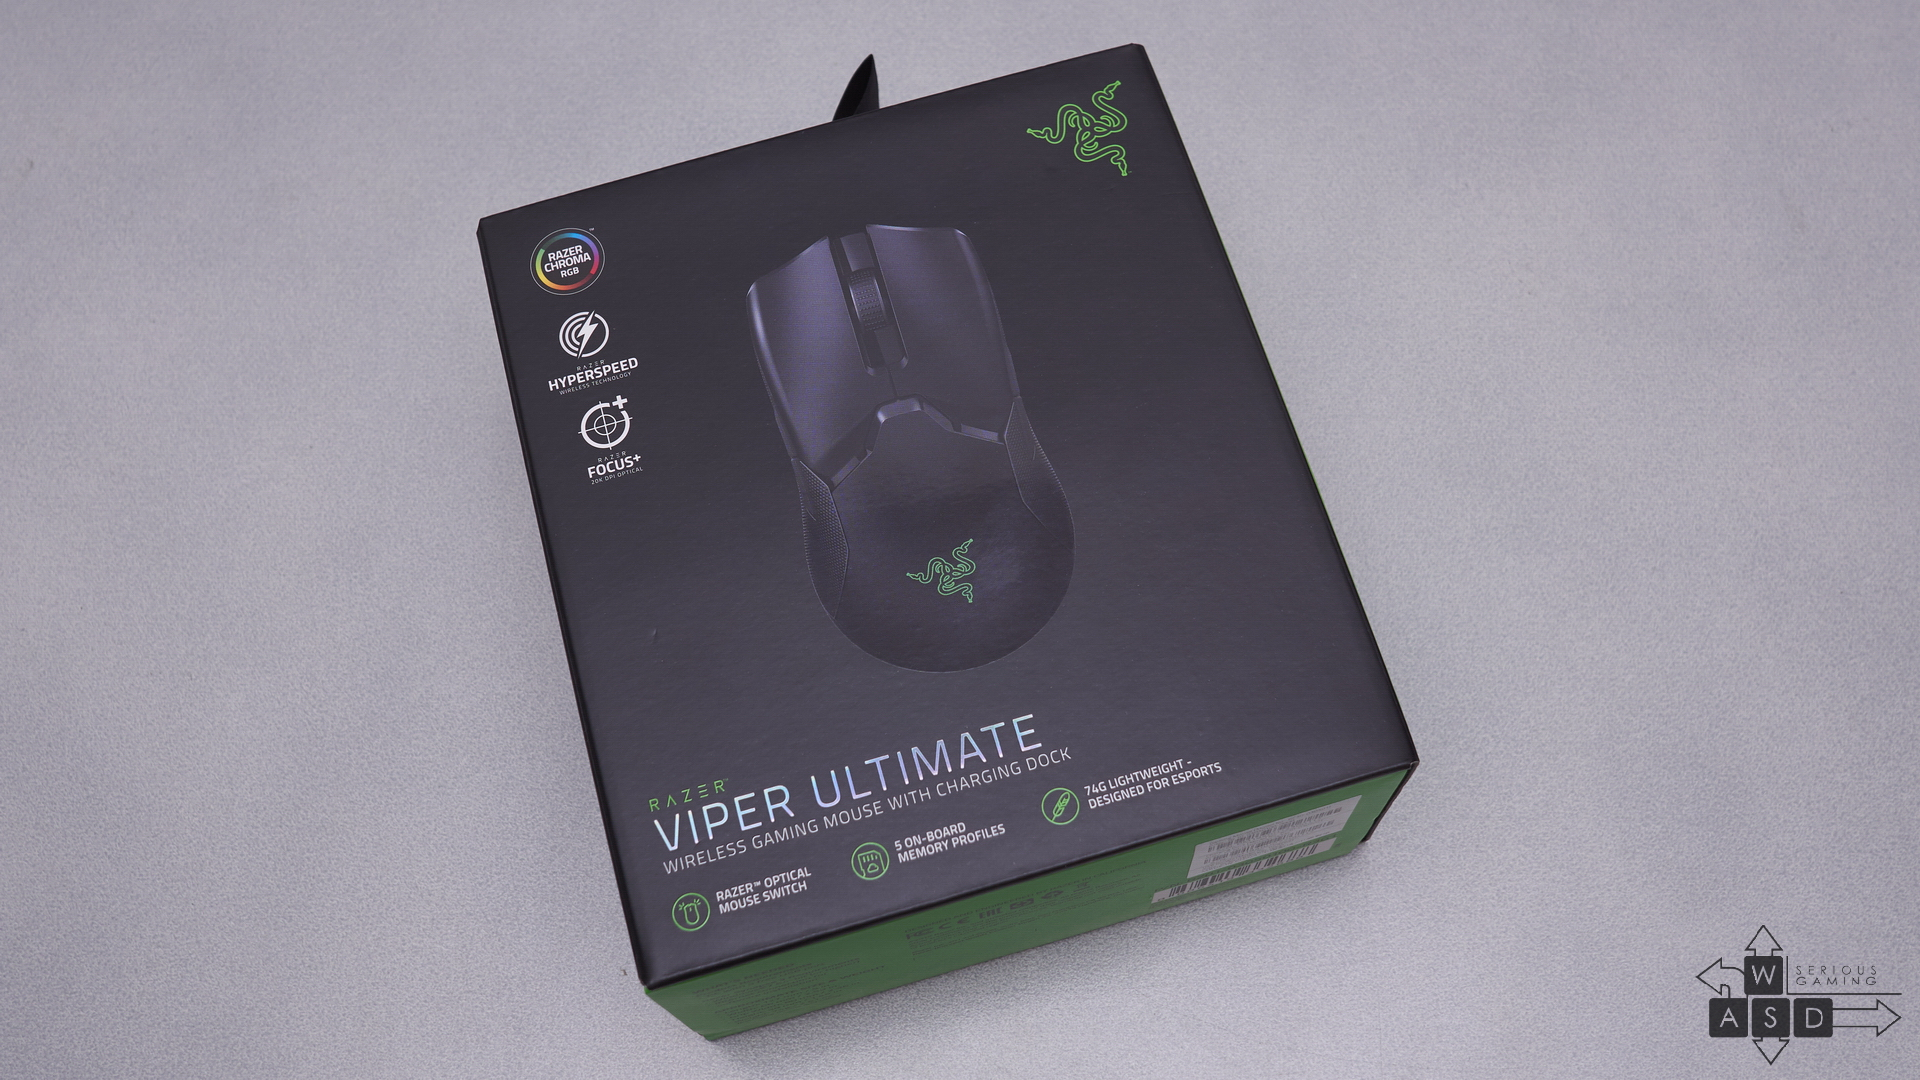 Razer Viper Ultimate review | WASD.ro